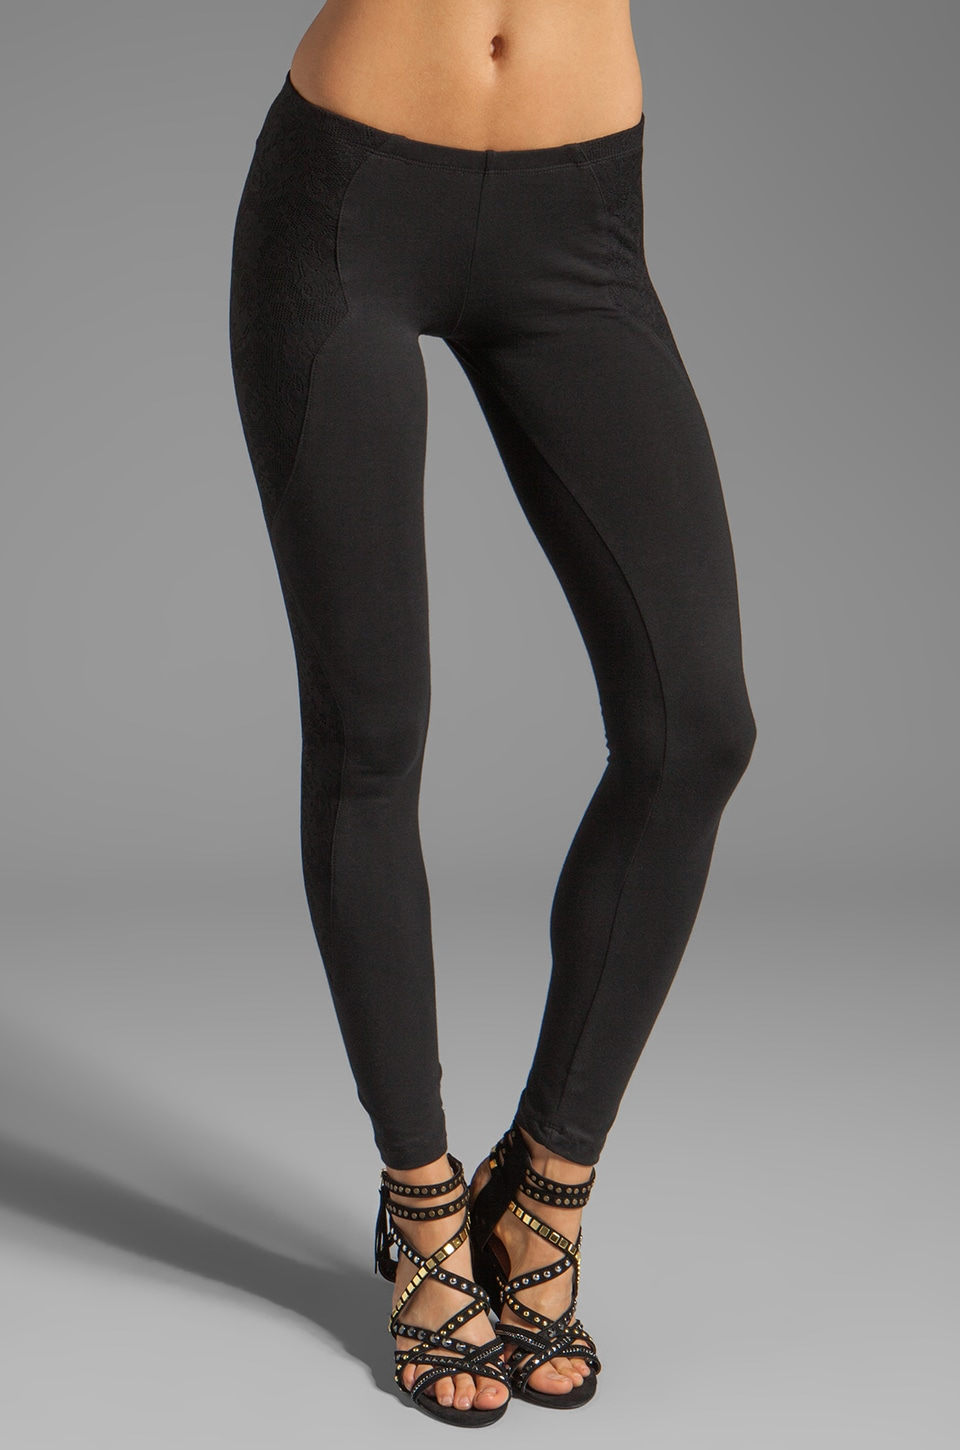 LNA Bowie Legging in Black